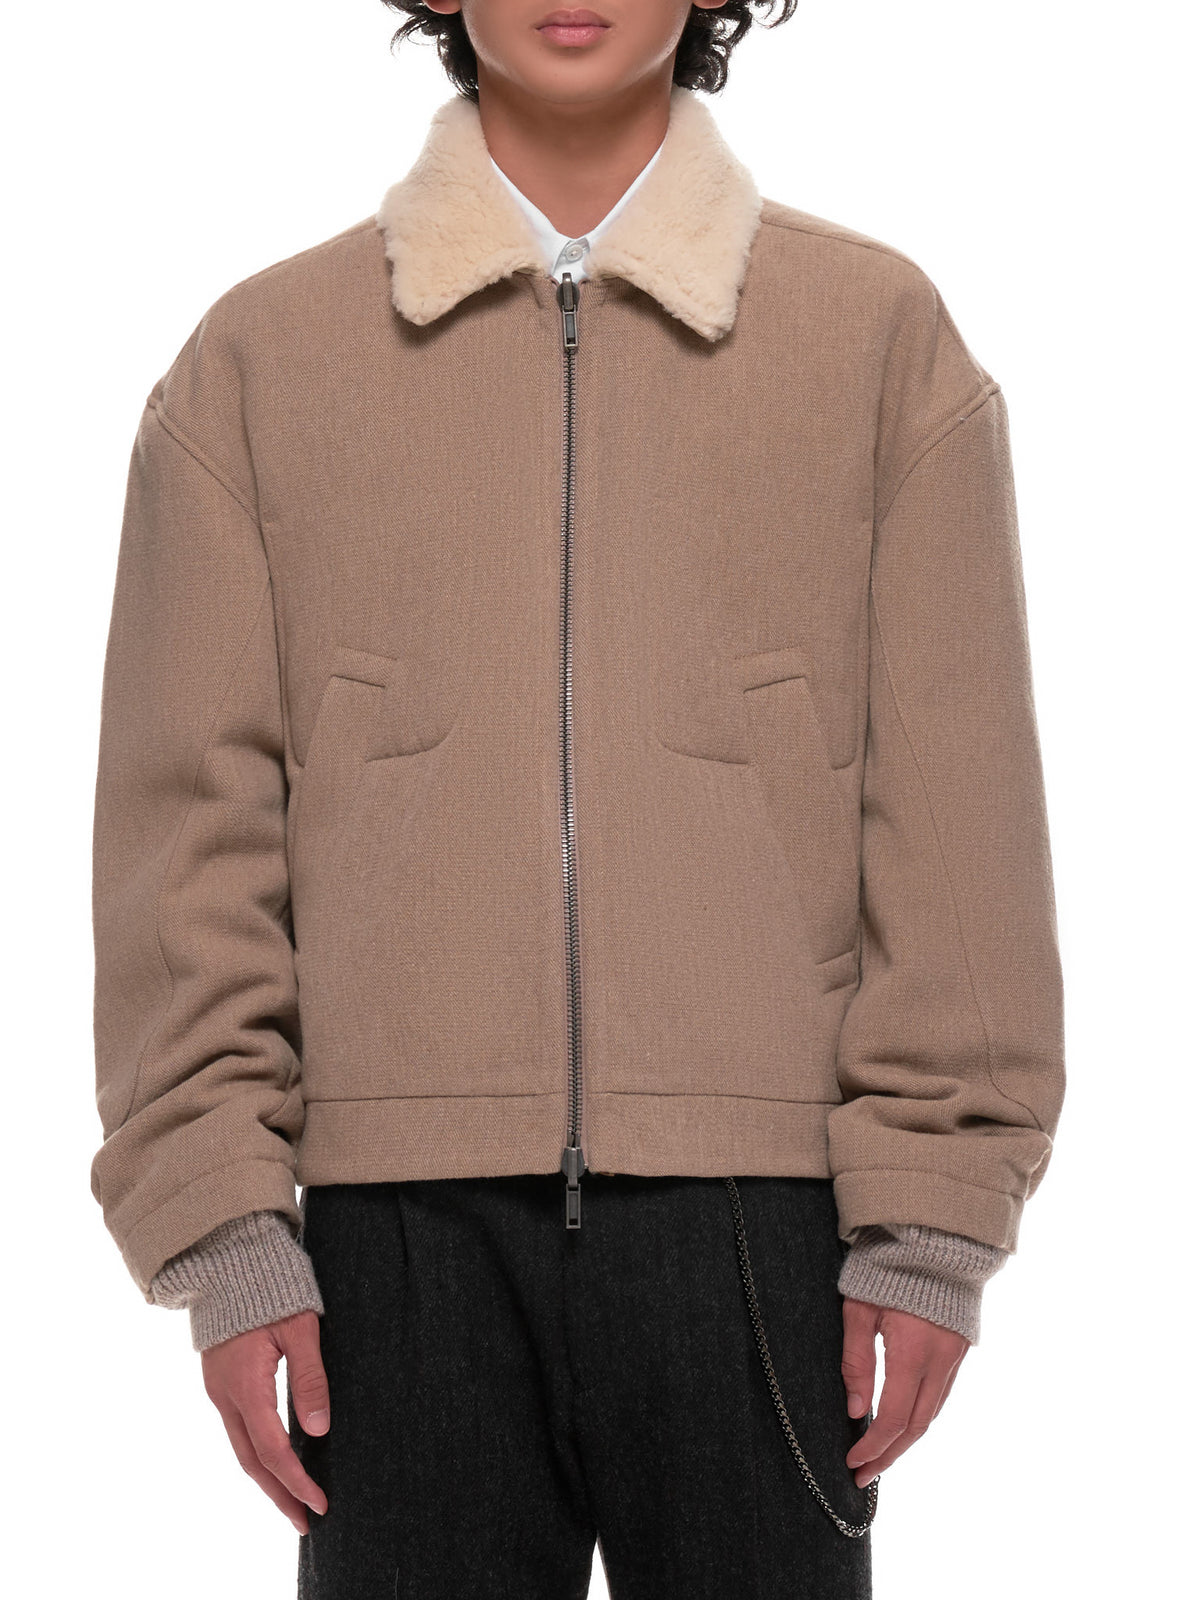 Wool Bomber Jacket (204-3018-204-007-BROWN)